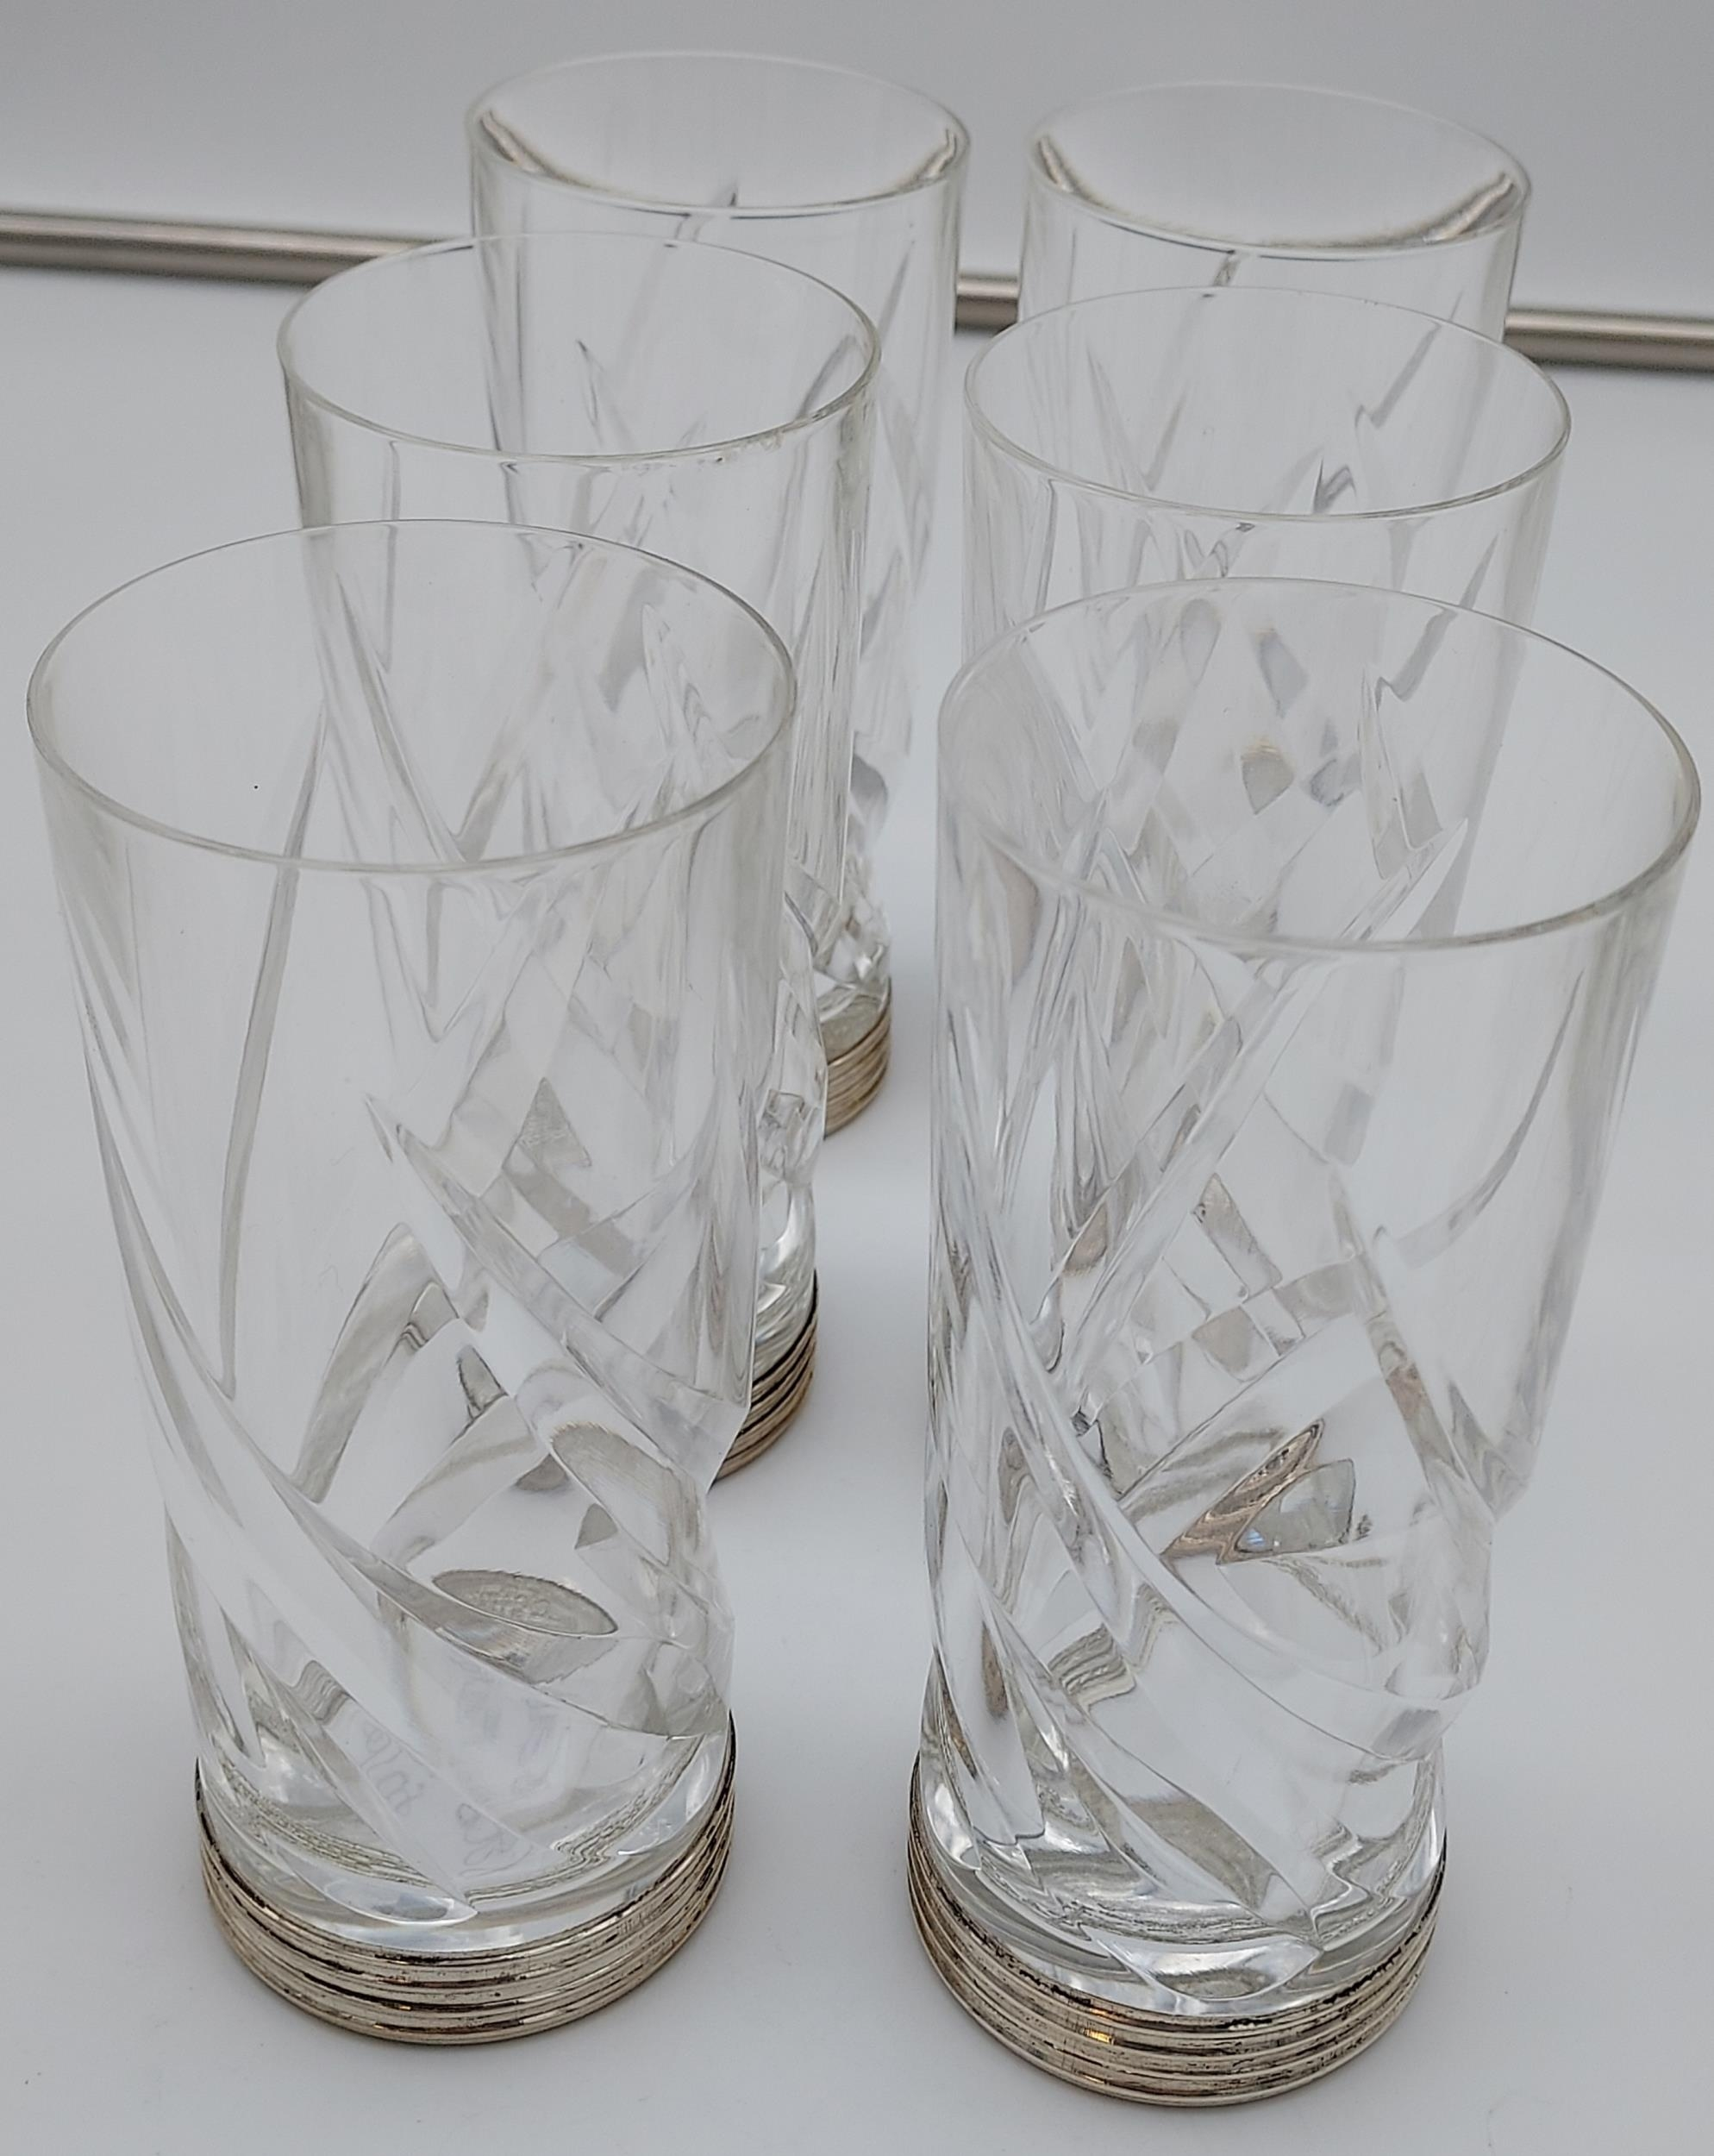 Crystal decanter with a 800 grade silver stopper, with 6 matching drinks glasses with silver - Image 6 of 8